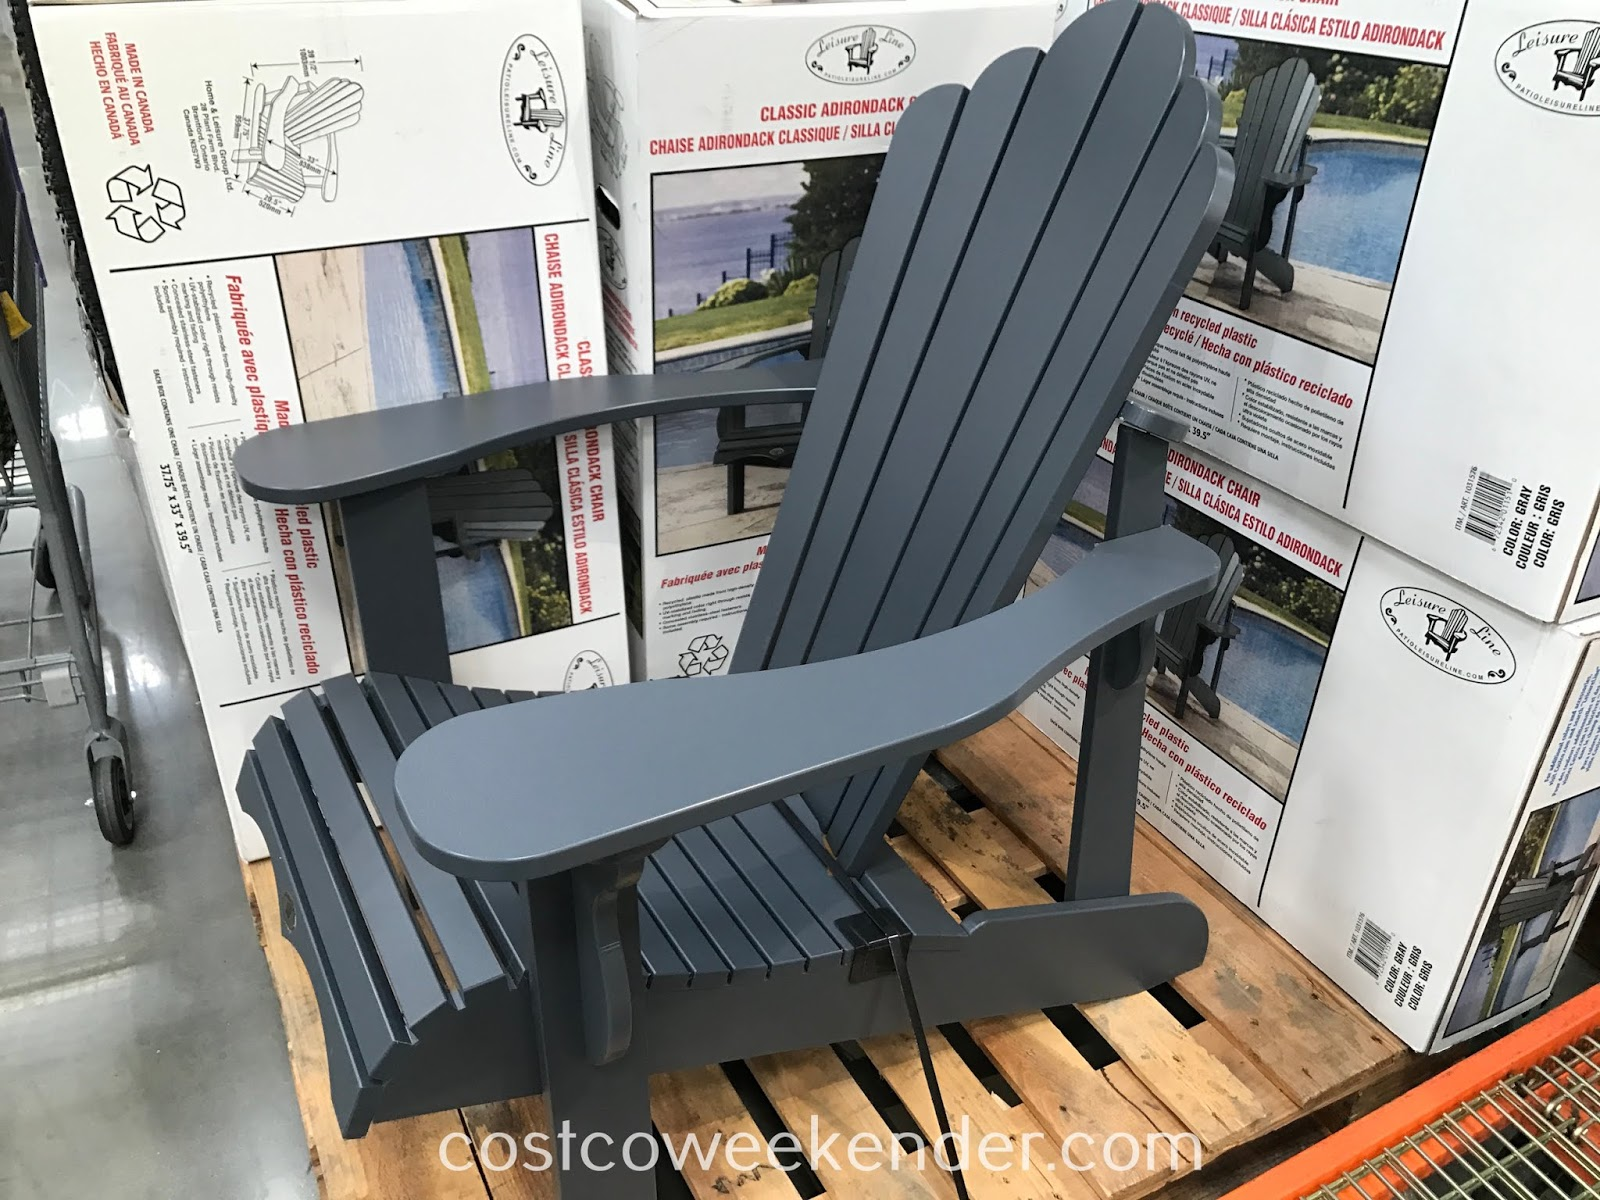 Relax in your backyard or patio on the Leisure Line Classic Adirondack Chair